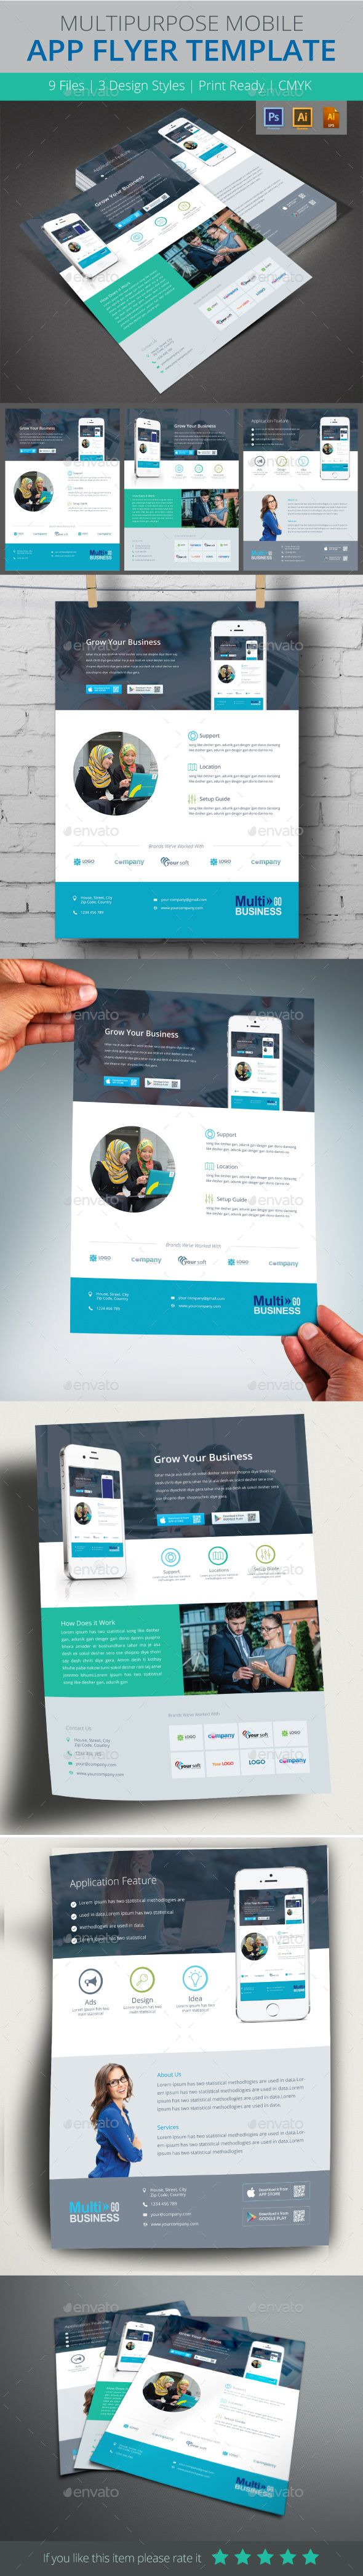 8 best app poster images on pinterest posters flyer design and